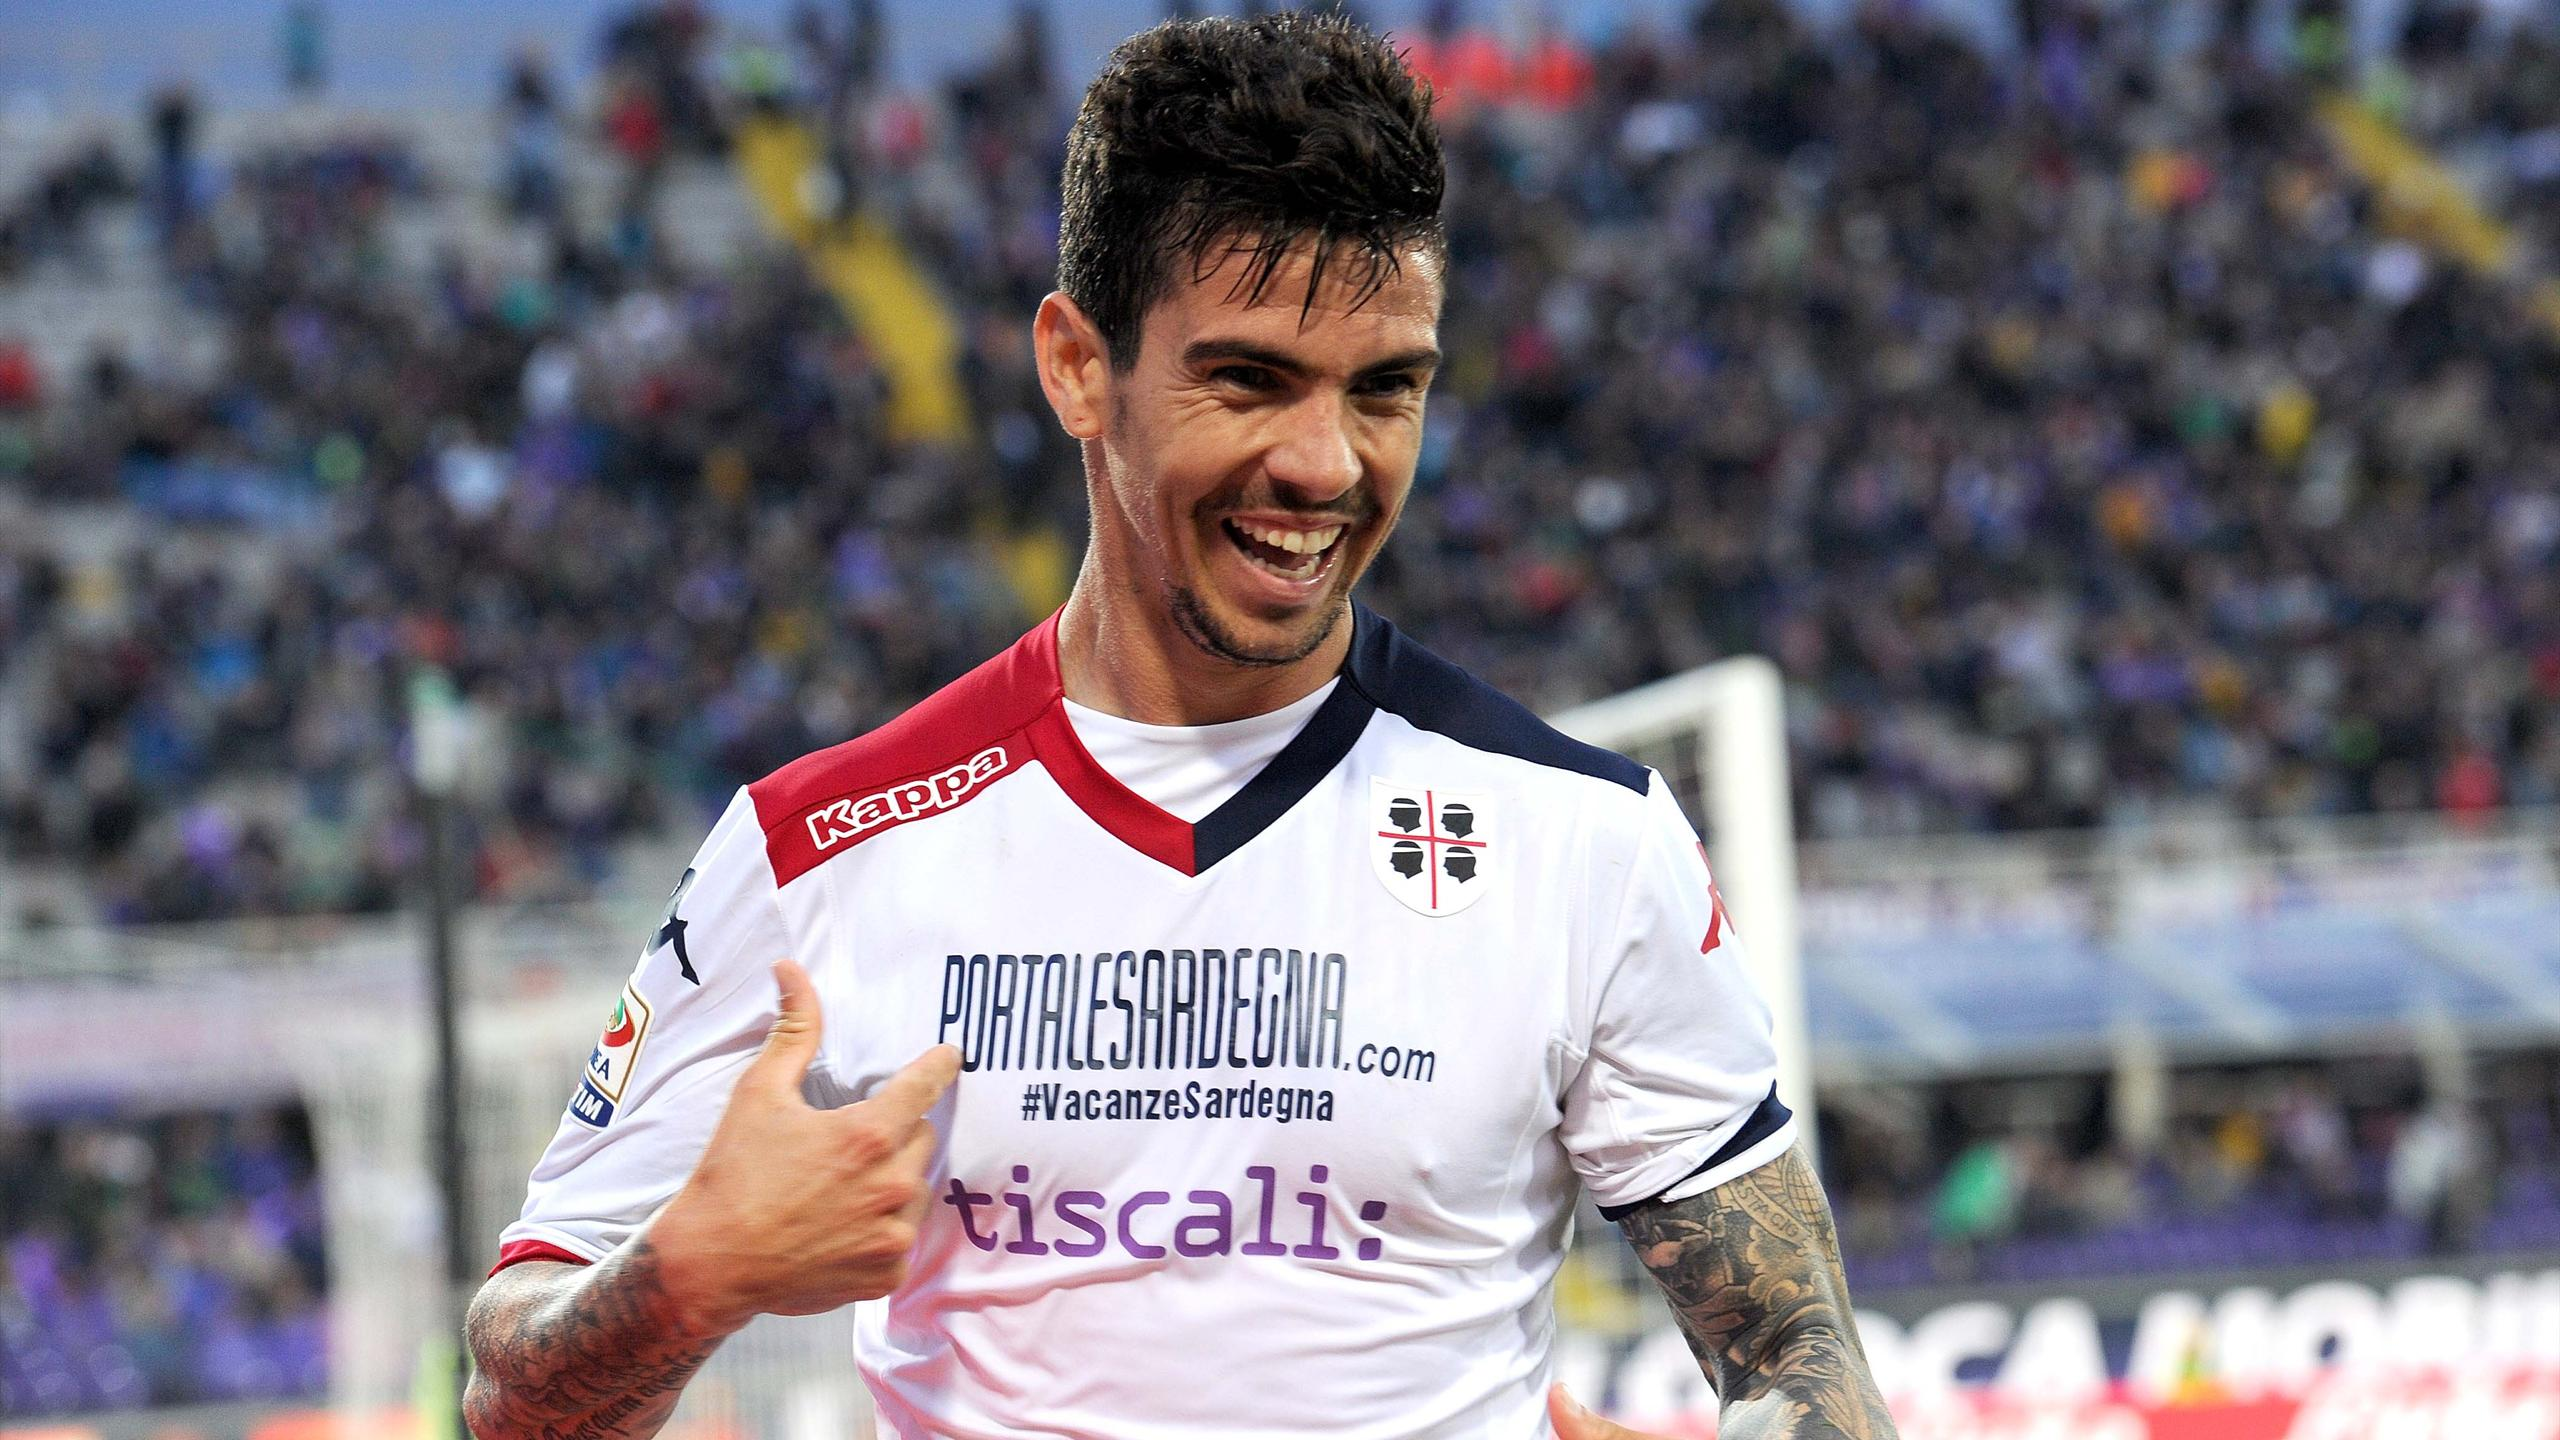 Video: Fiorentina vs Cagliari